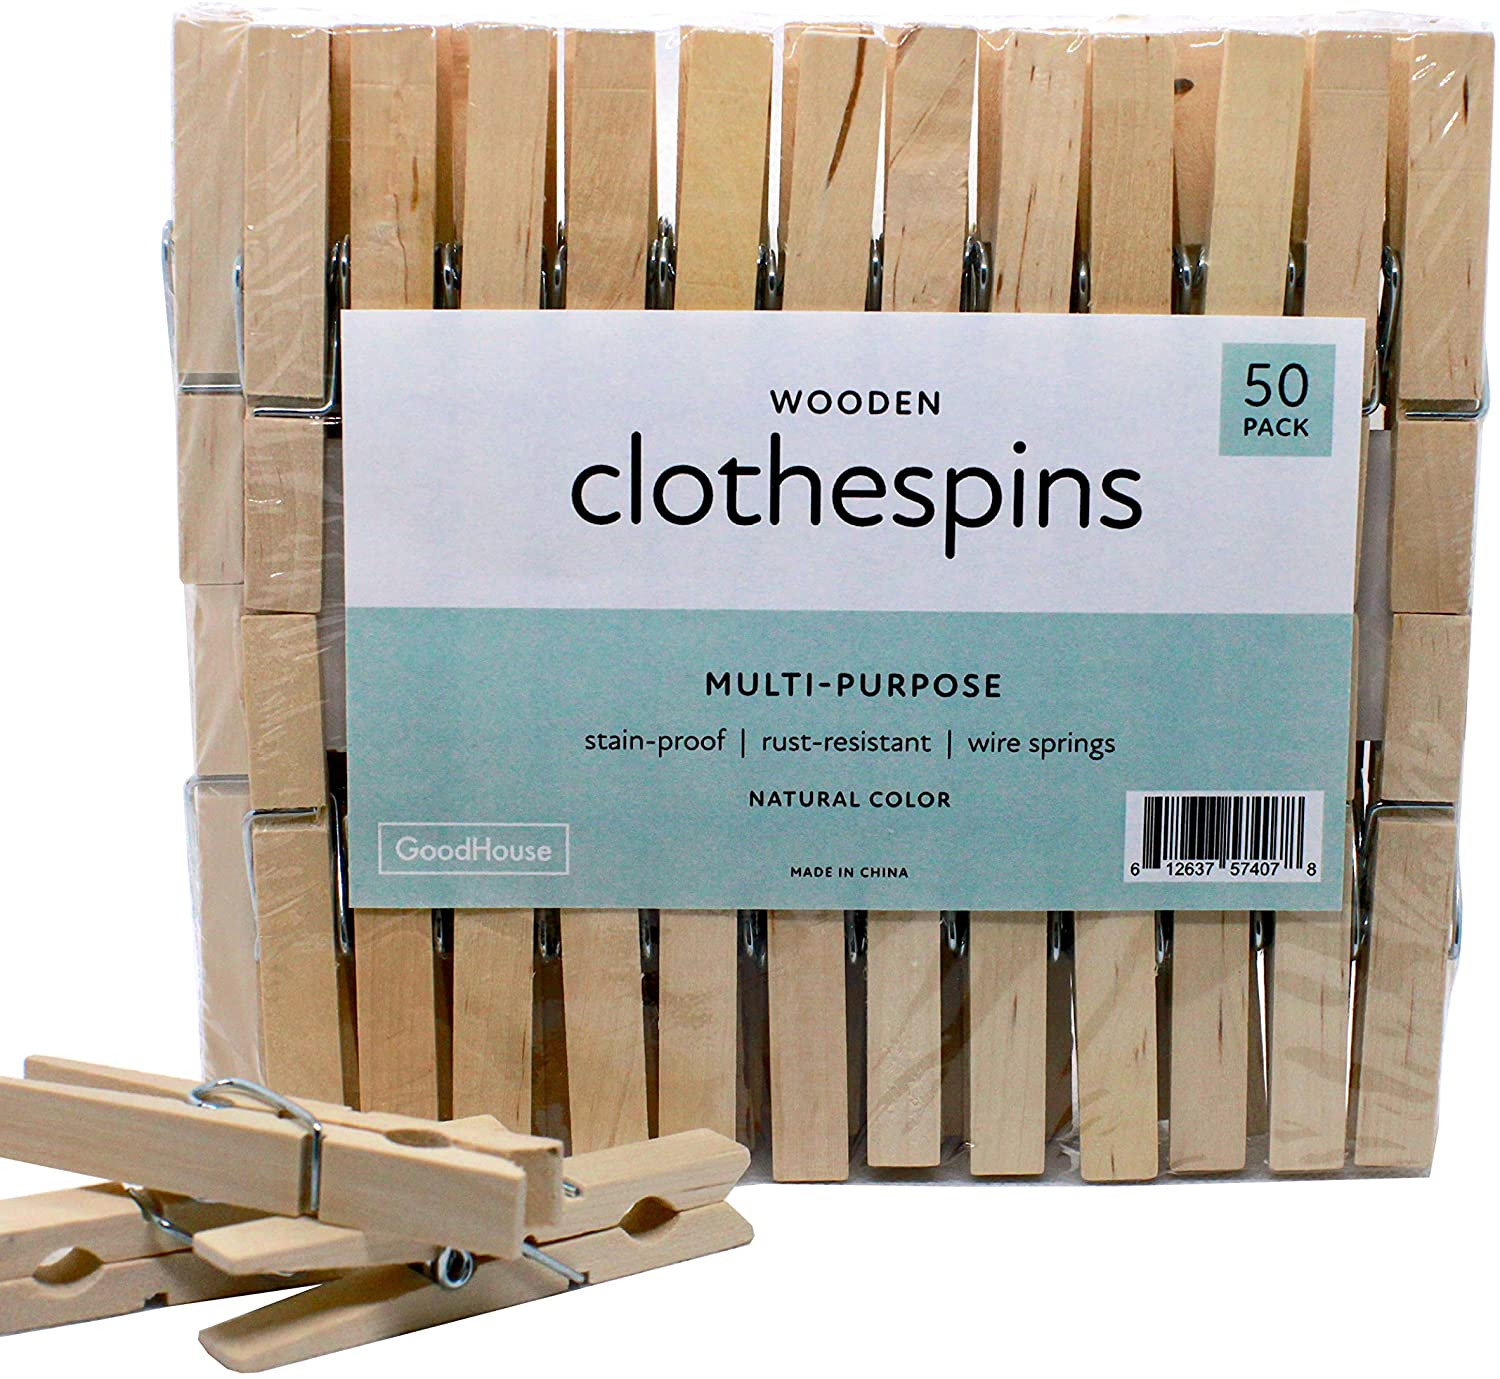 Goodhouse Wooden Clothespins, 50 Pack, Large Multi-Purpose (3 x .5 Inches)